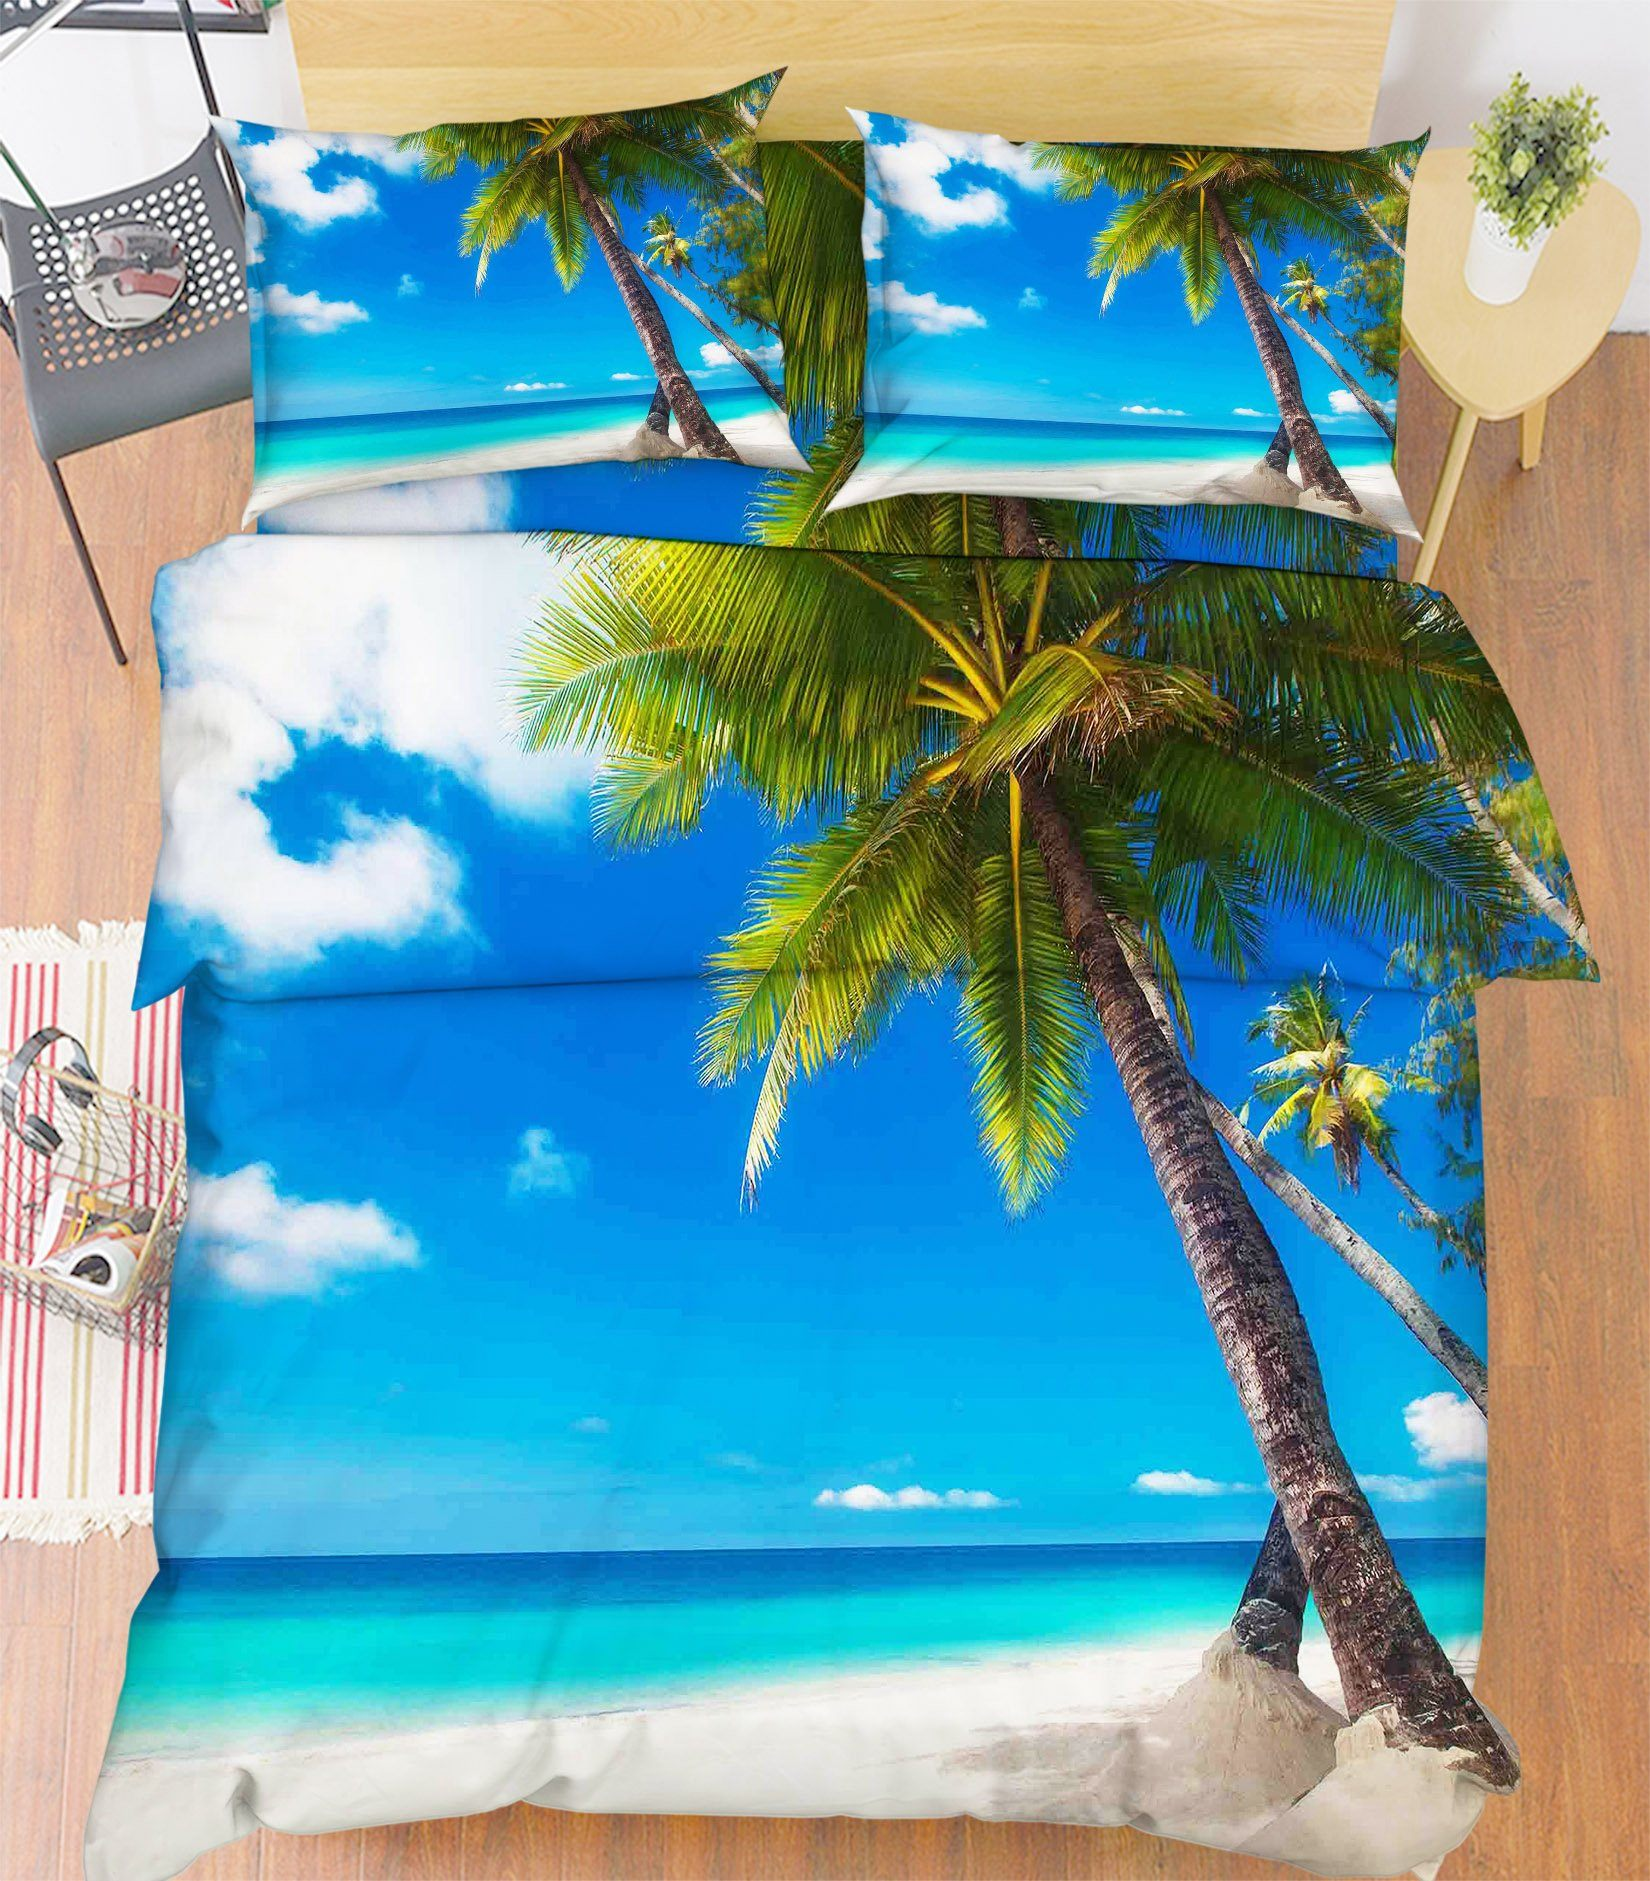 3D Beach Scenery 76 Bed Pillowcases Quilt